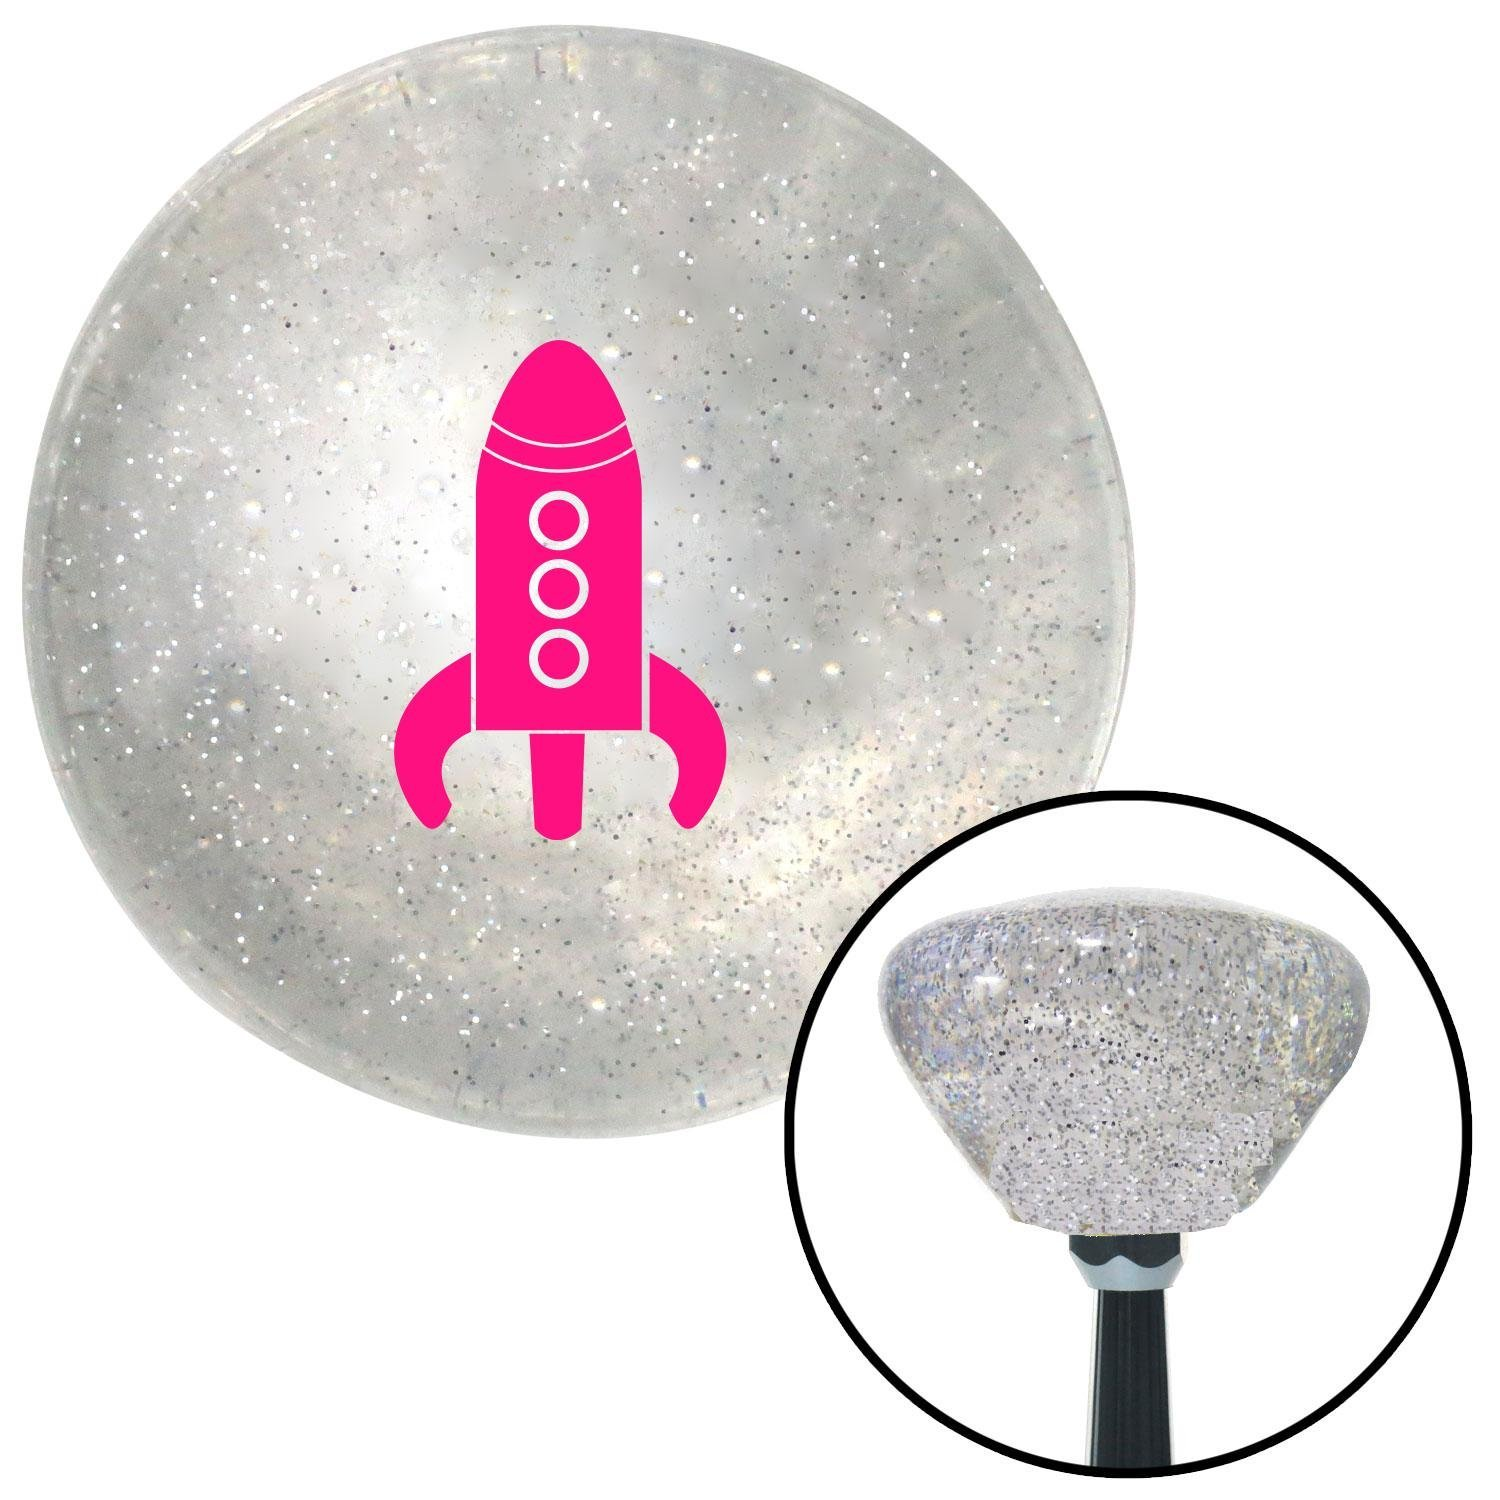 Pink Space Ship American Shifter 164171 Clear Retro Metal Flake Shift Knob with M16 x 1.5 Insert